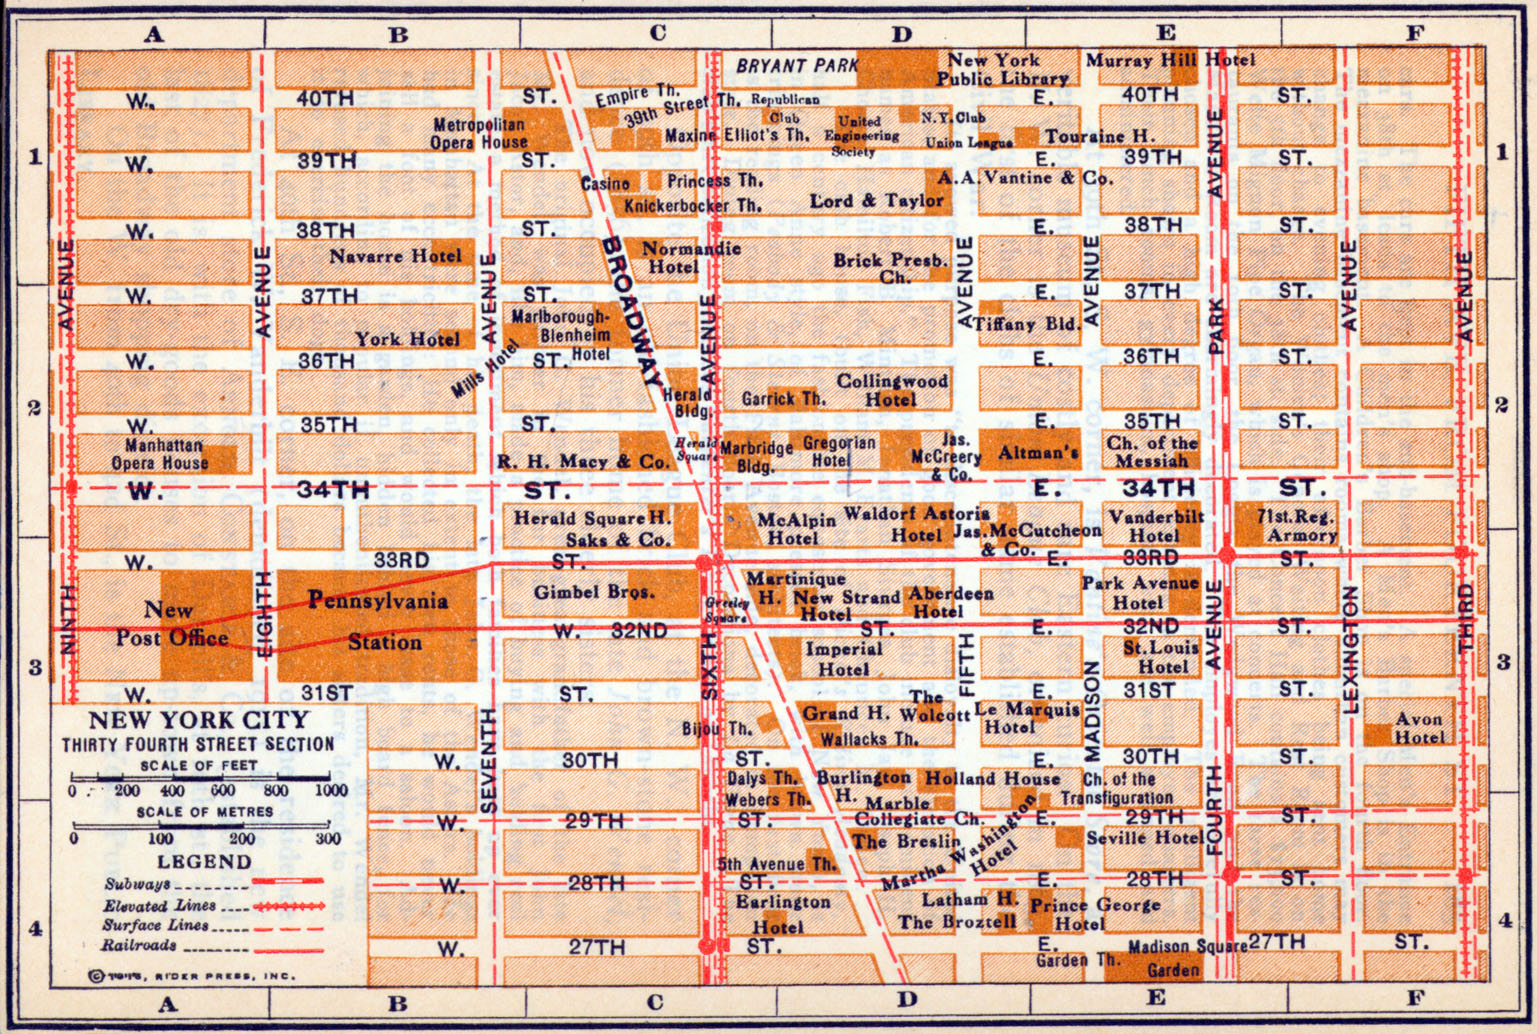 Thirty Fourth Street Section Map, New York City, New York, United States 1916